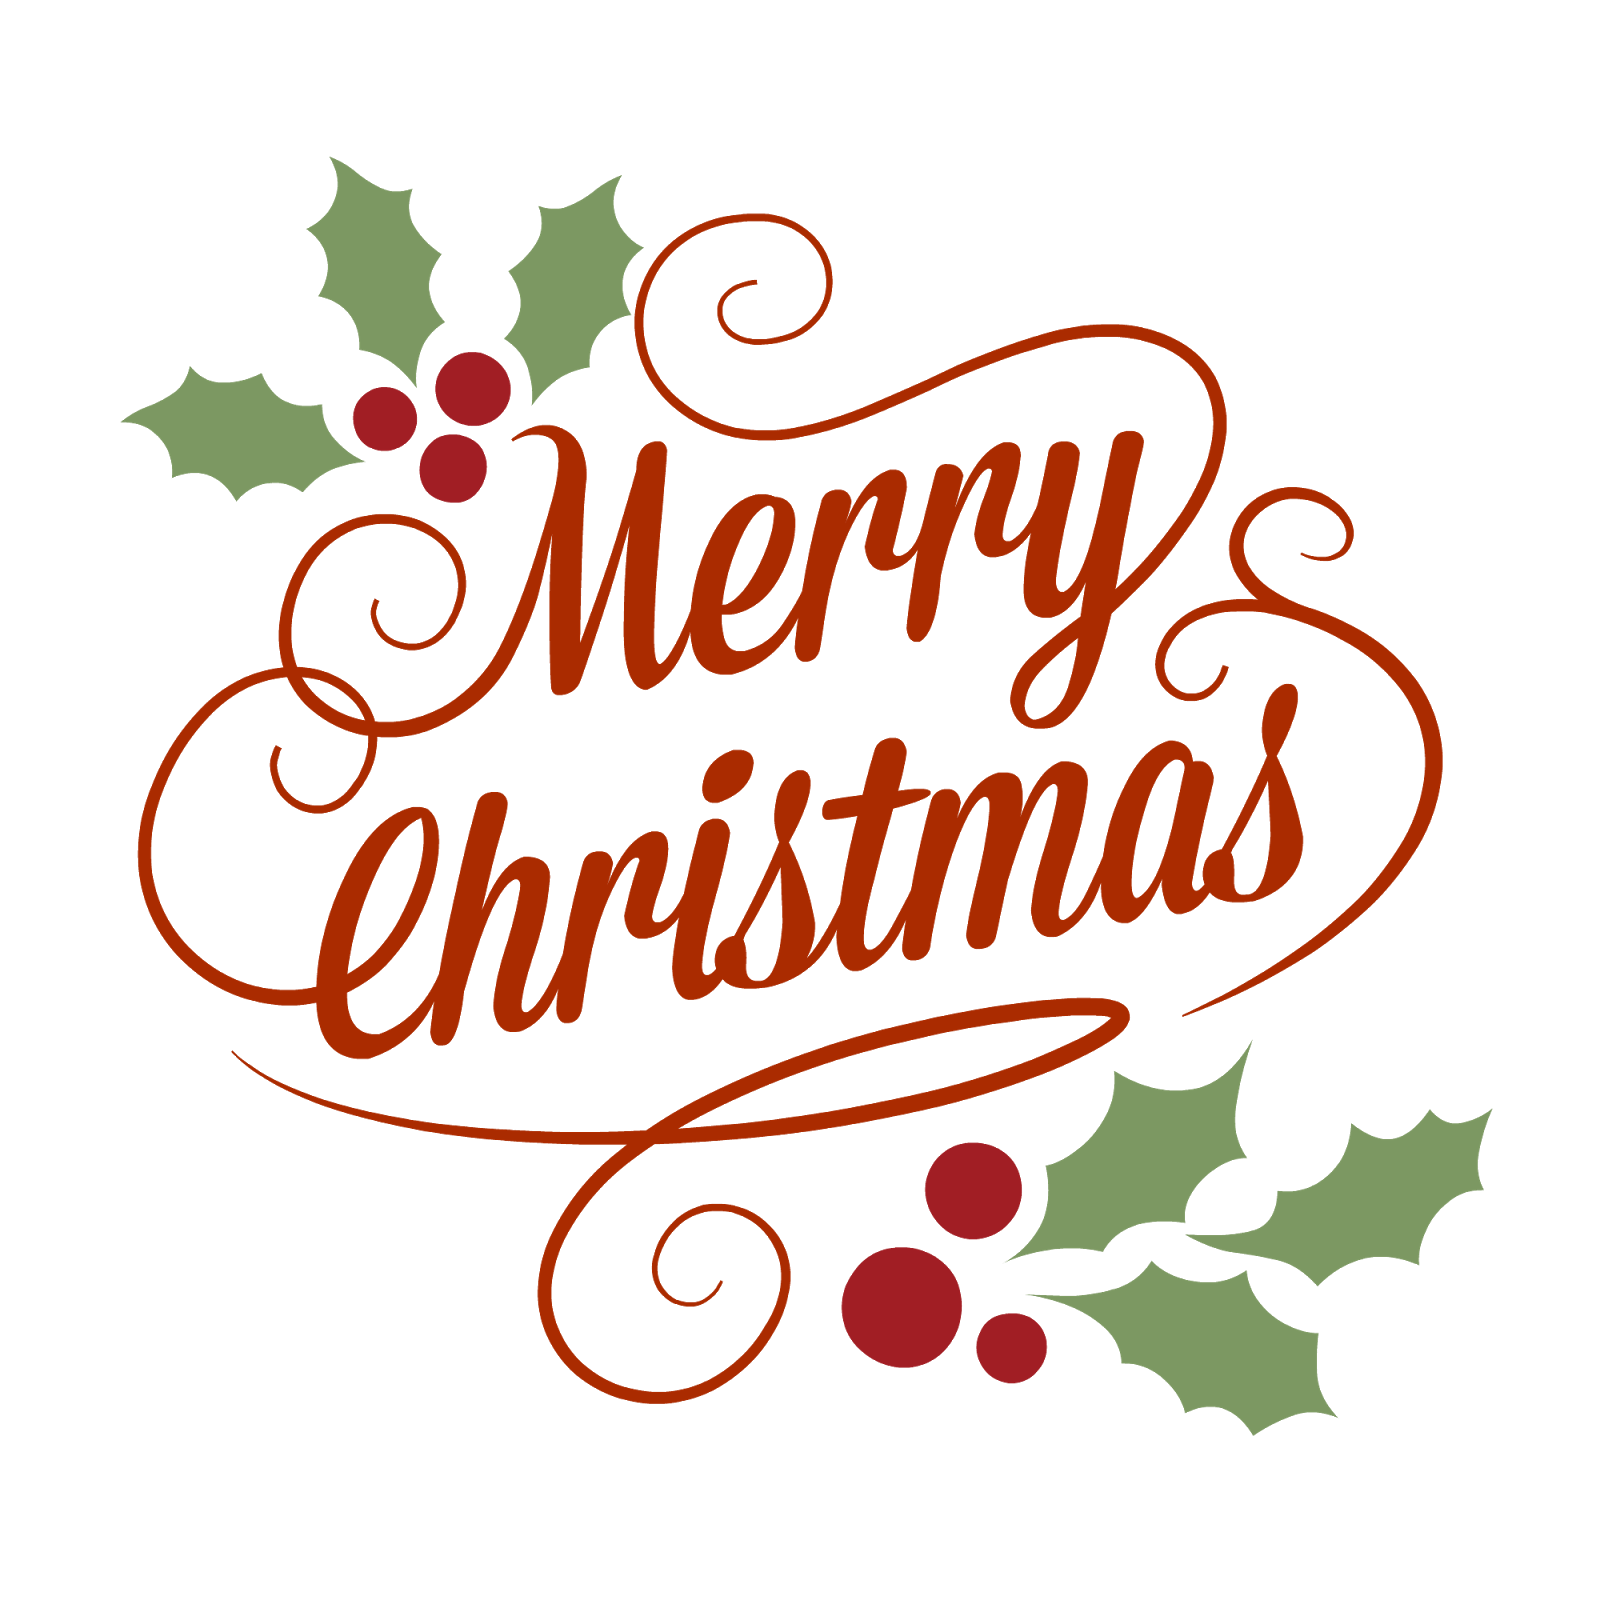 Christmas sign clipart svg black and white library Merry Christmas Classical Vintage Sign transparent PNG - StickPNG svg black and white library